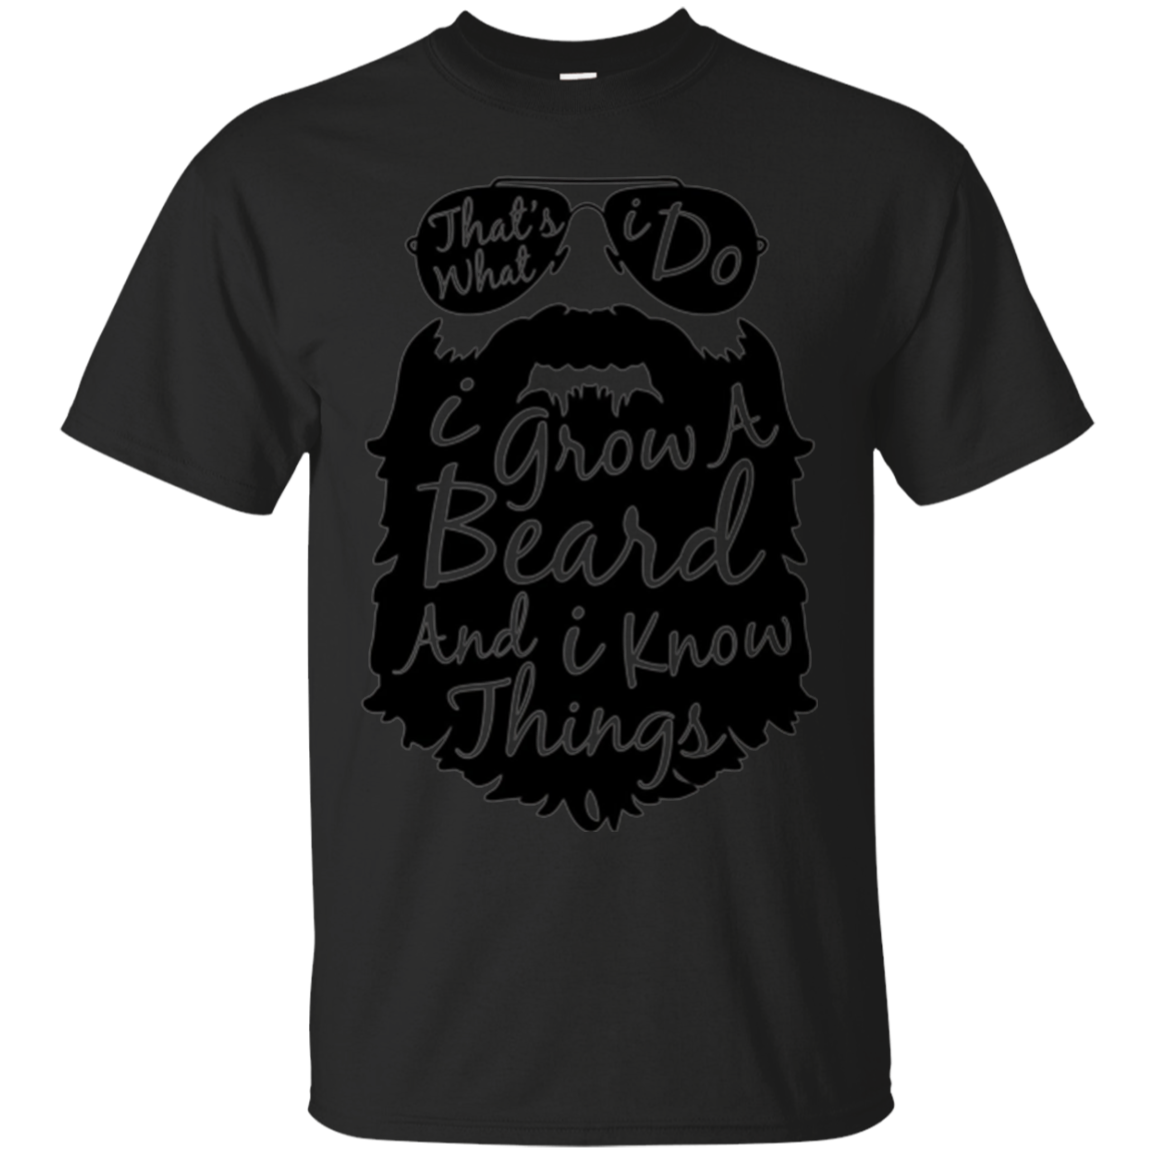 Thats what I do I grow a beard and I know things t shirt